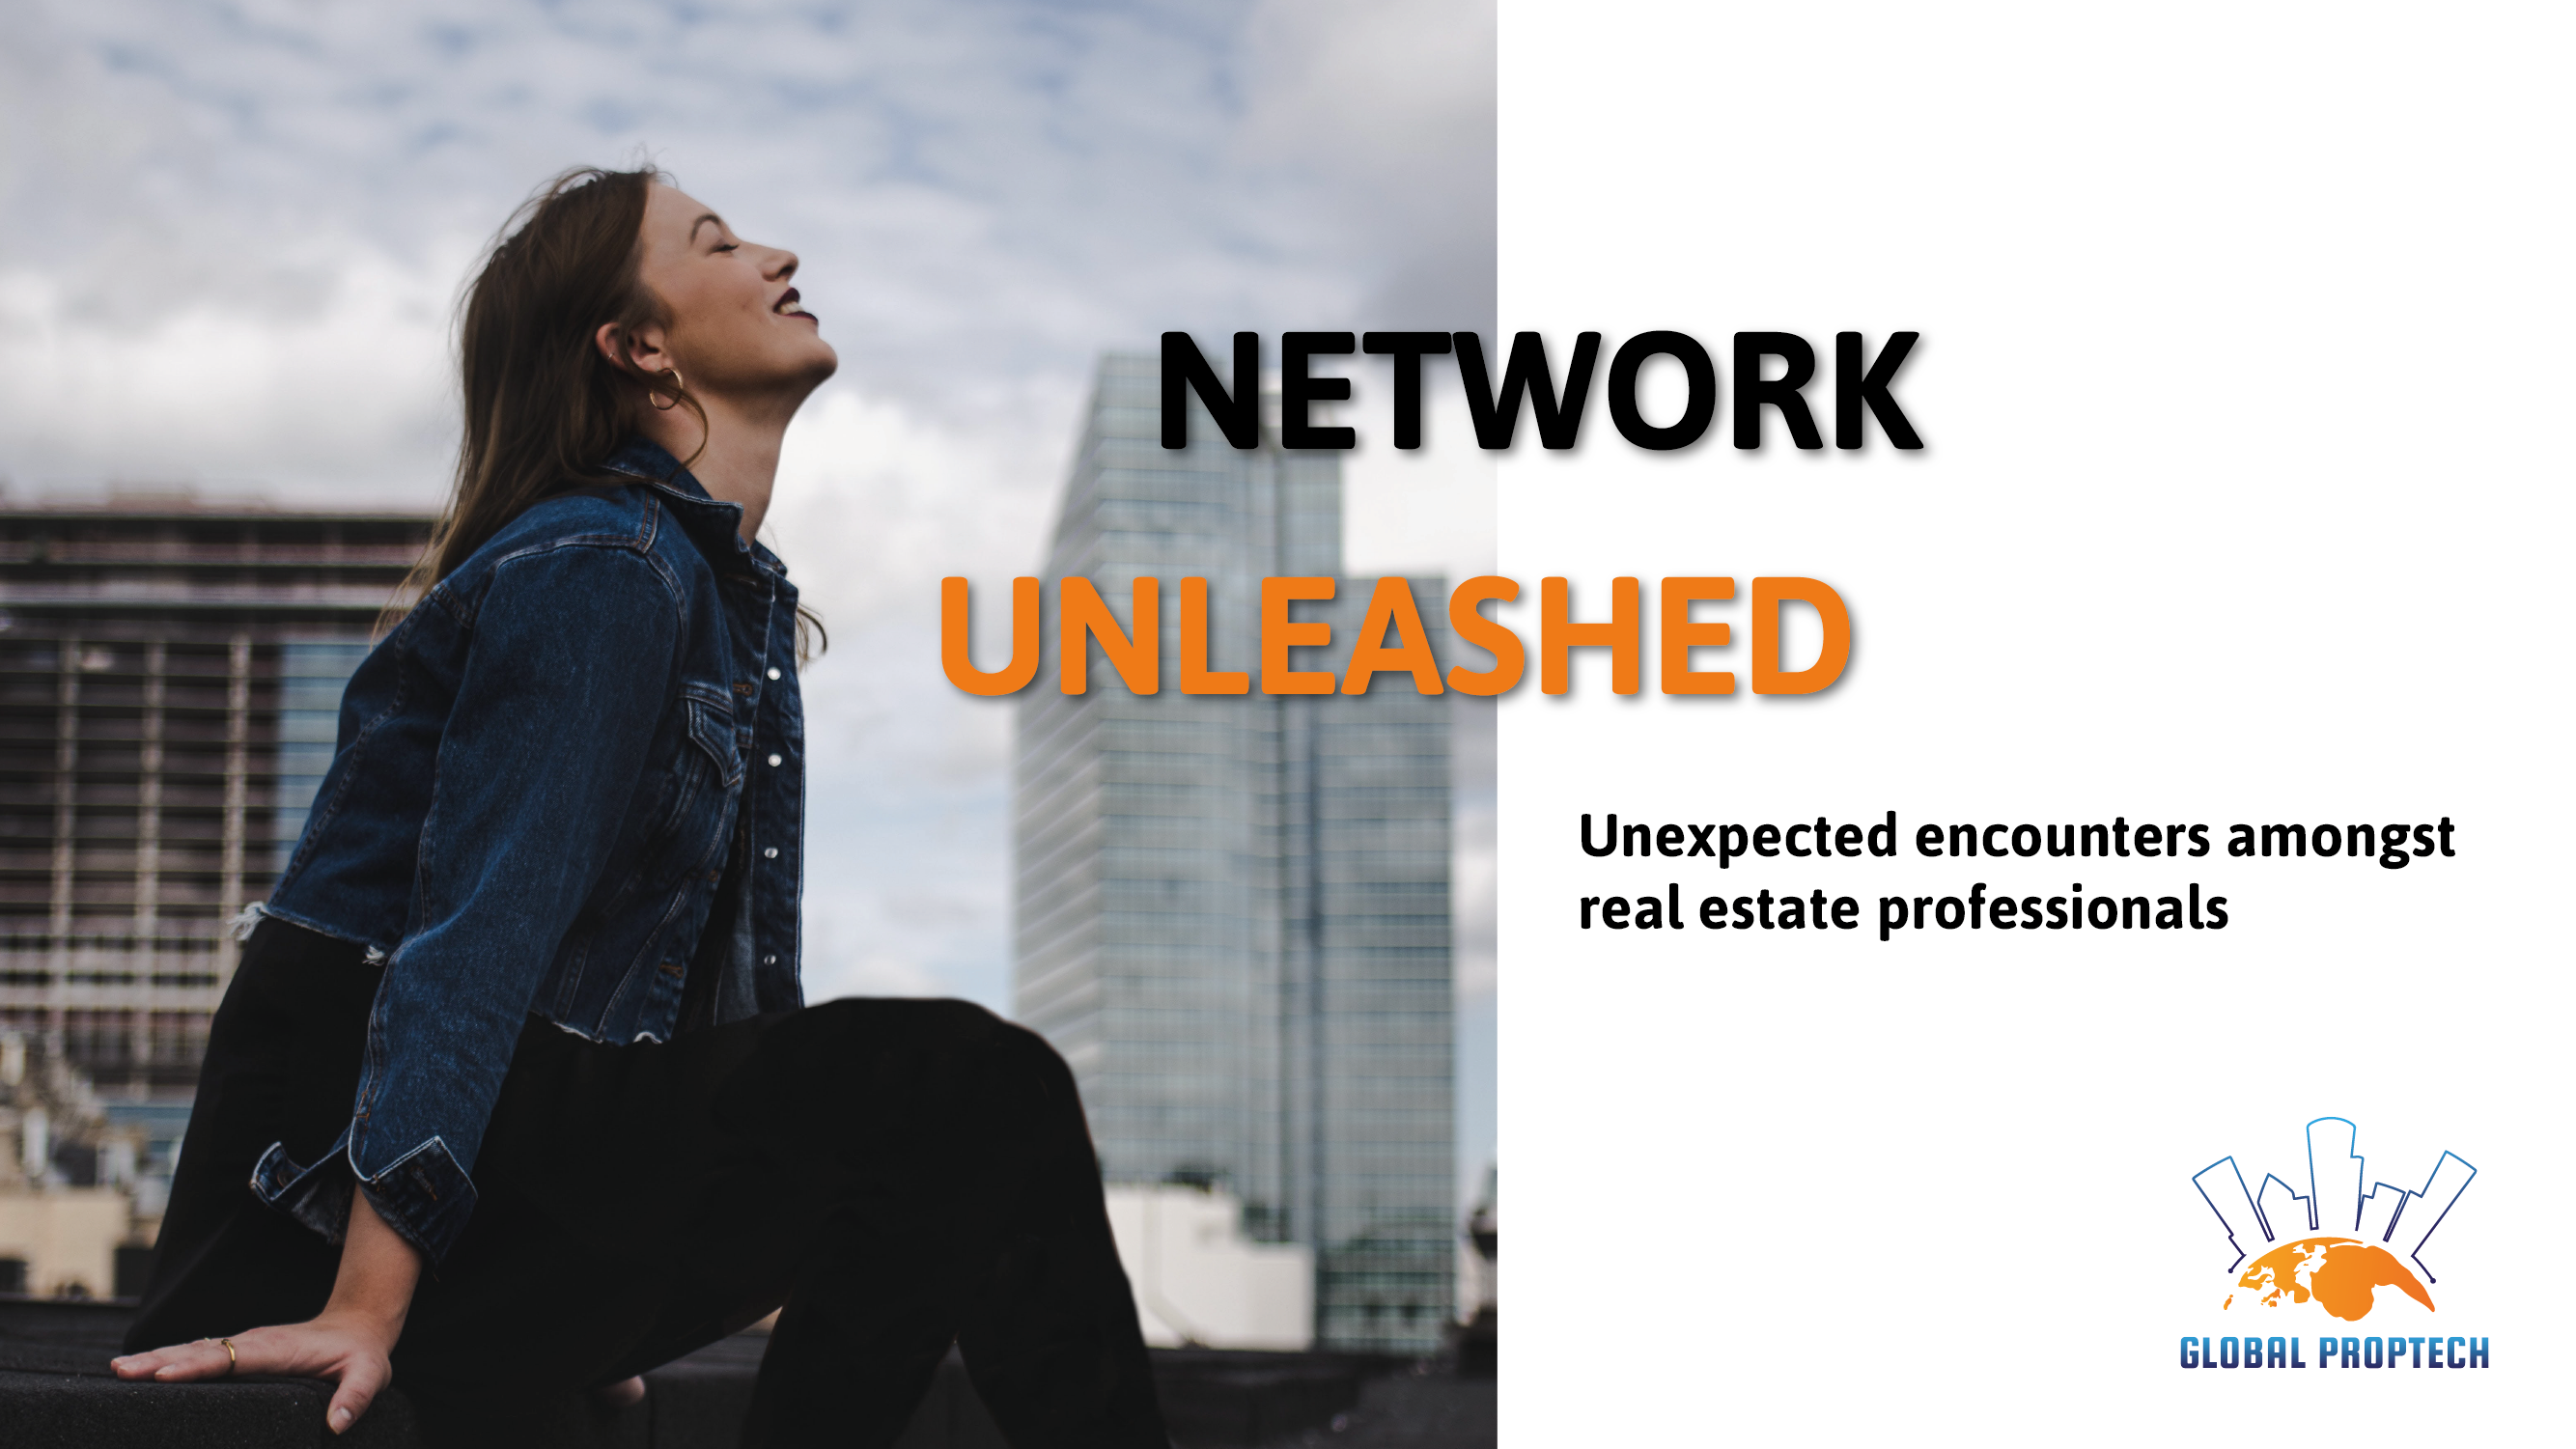 Network unleashed global